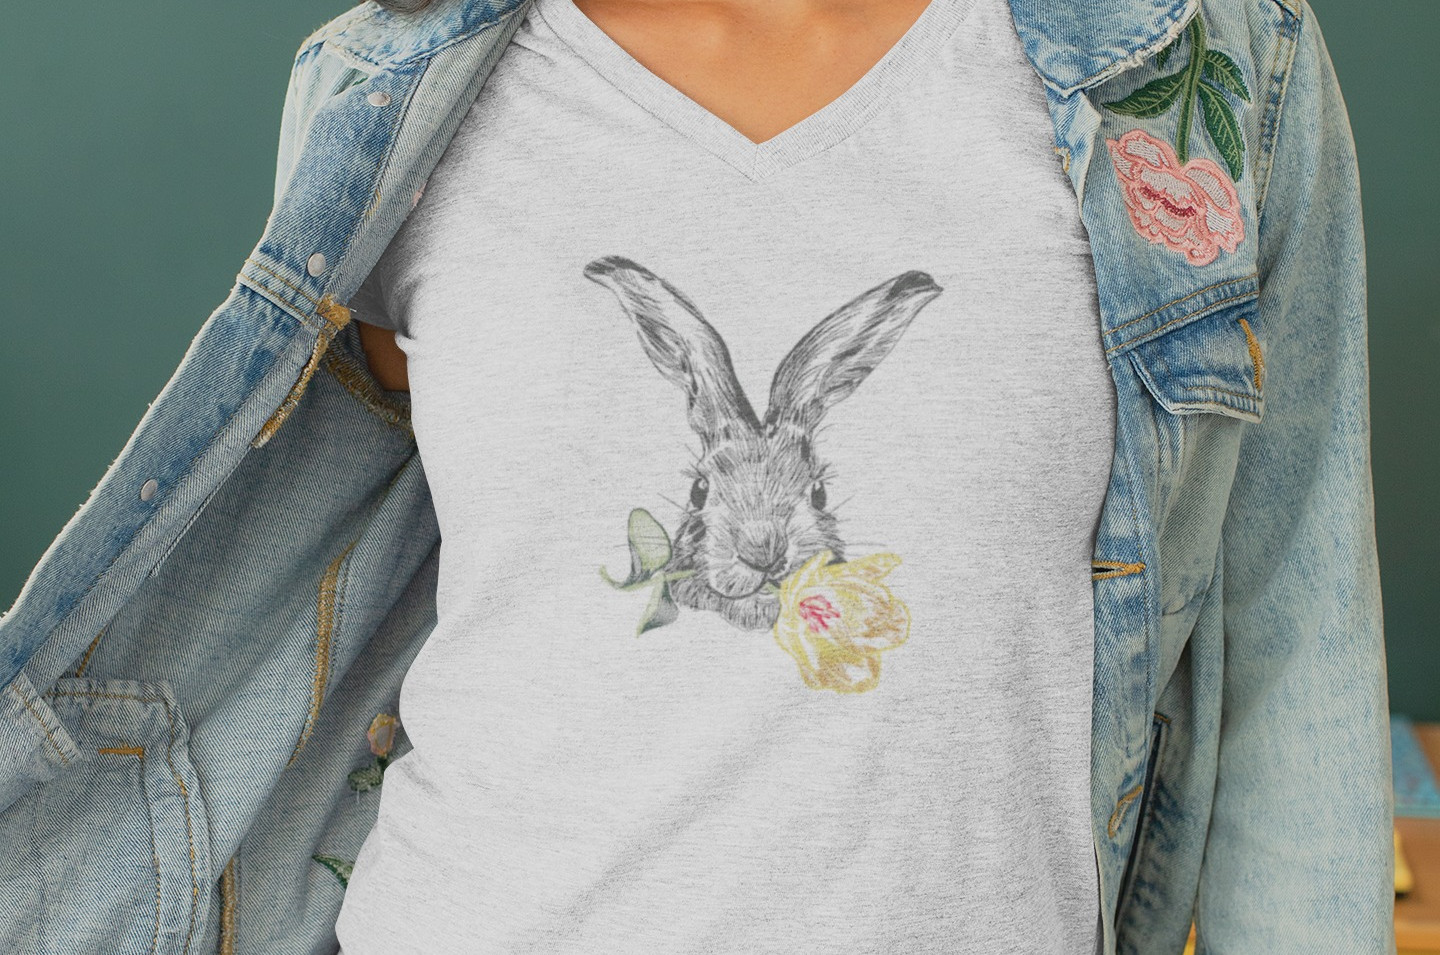 heather-t-shirt-mockup-of-a-young-woman-